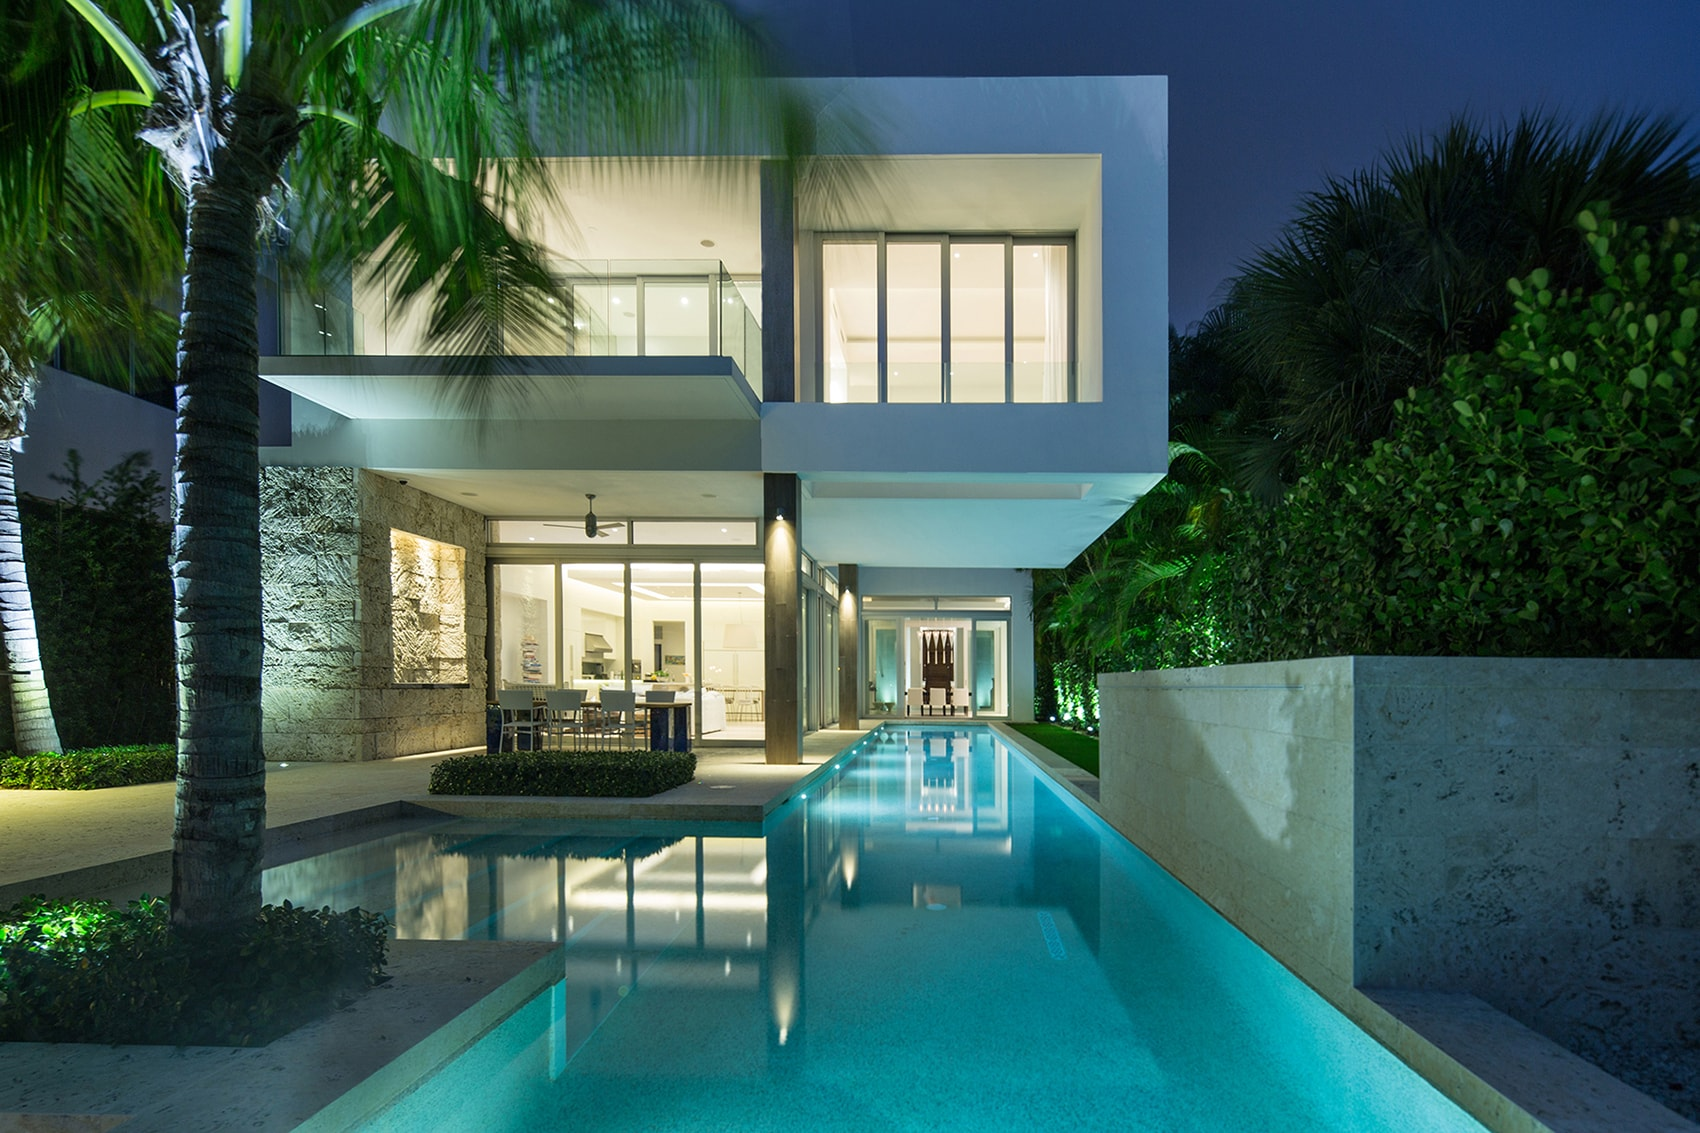 Hotels With Infinity Pools Offers Stunning Views further Boxing Girls Hot also Minimalist House Ever Designed as well Colour  bination For Living Room With Textures And Wall Arts in addition Medium Size Homes 50 Foot Wide Lot 4. on beautiful home interior designs